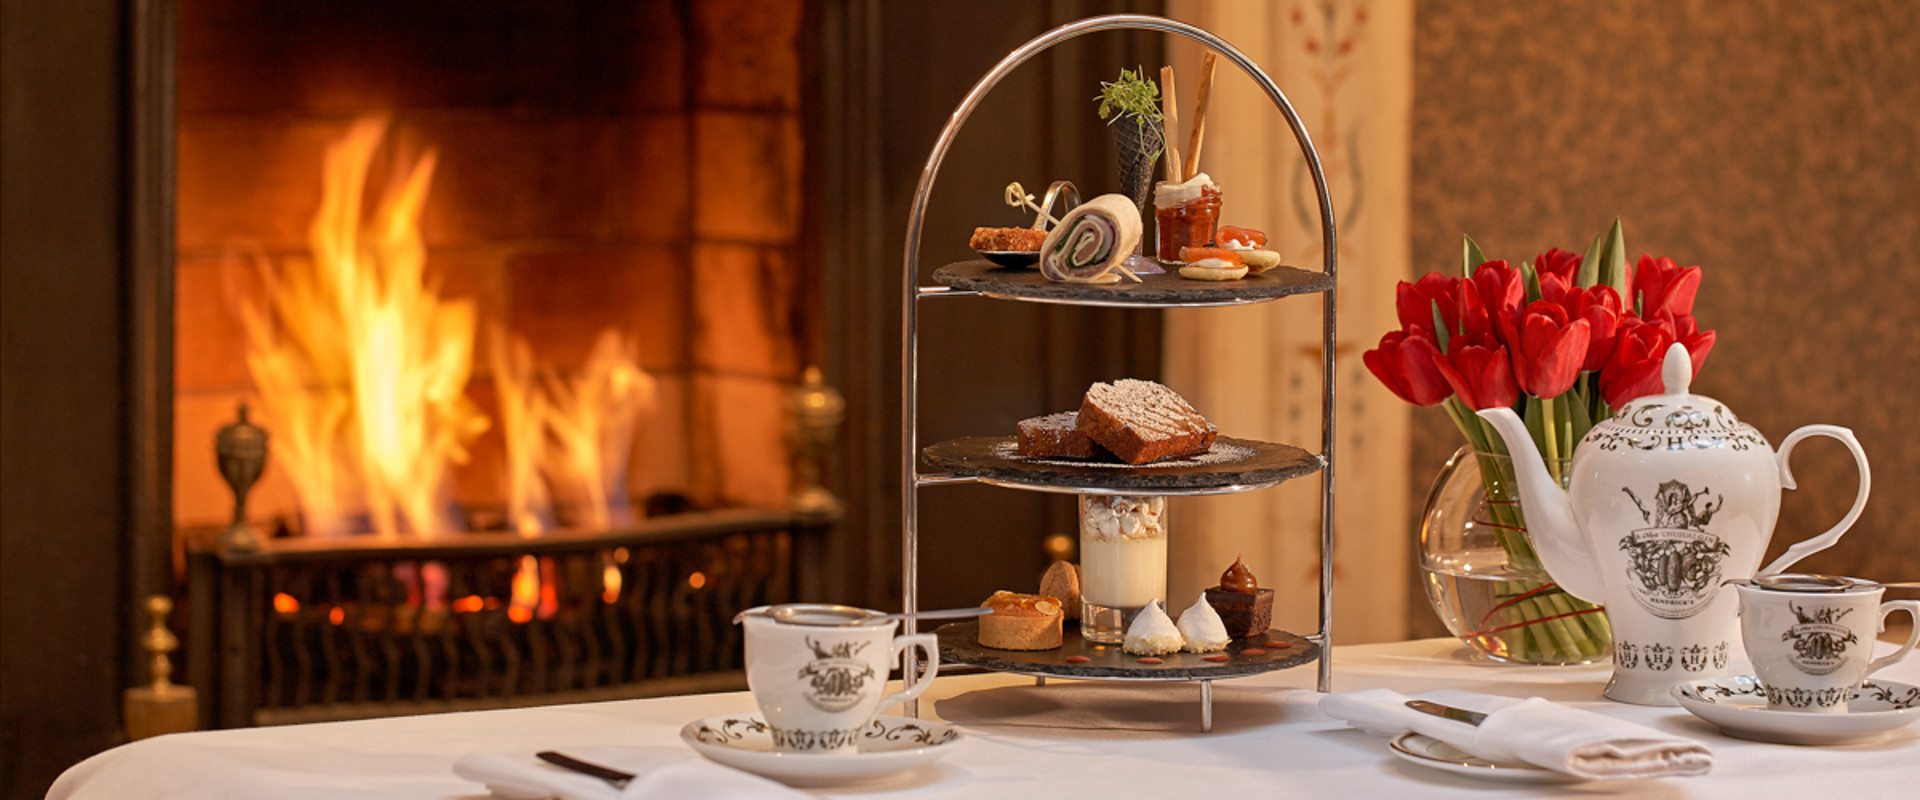 The Atrium Lounge Fireplace- Afternoon Tea Setting